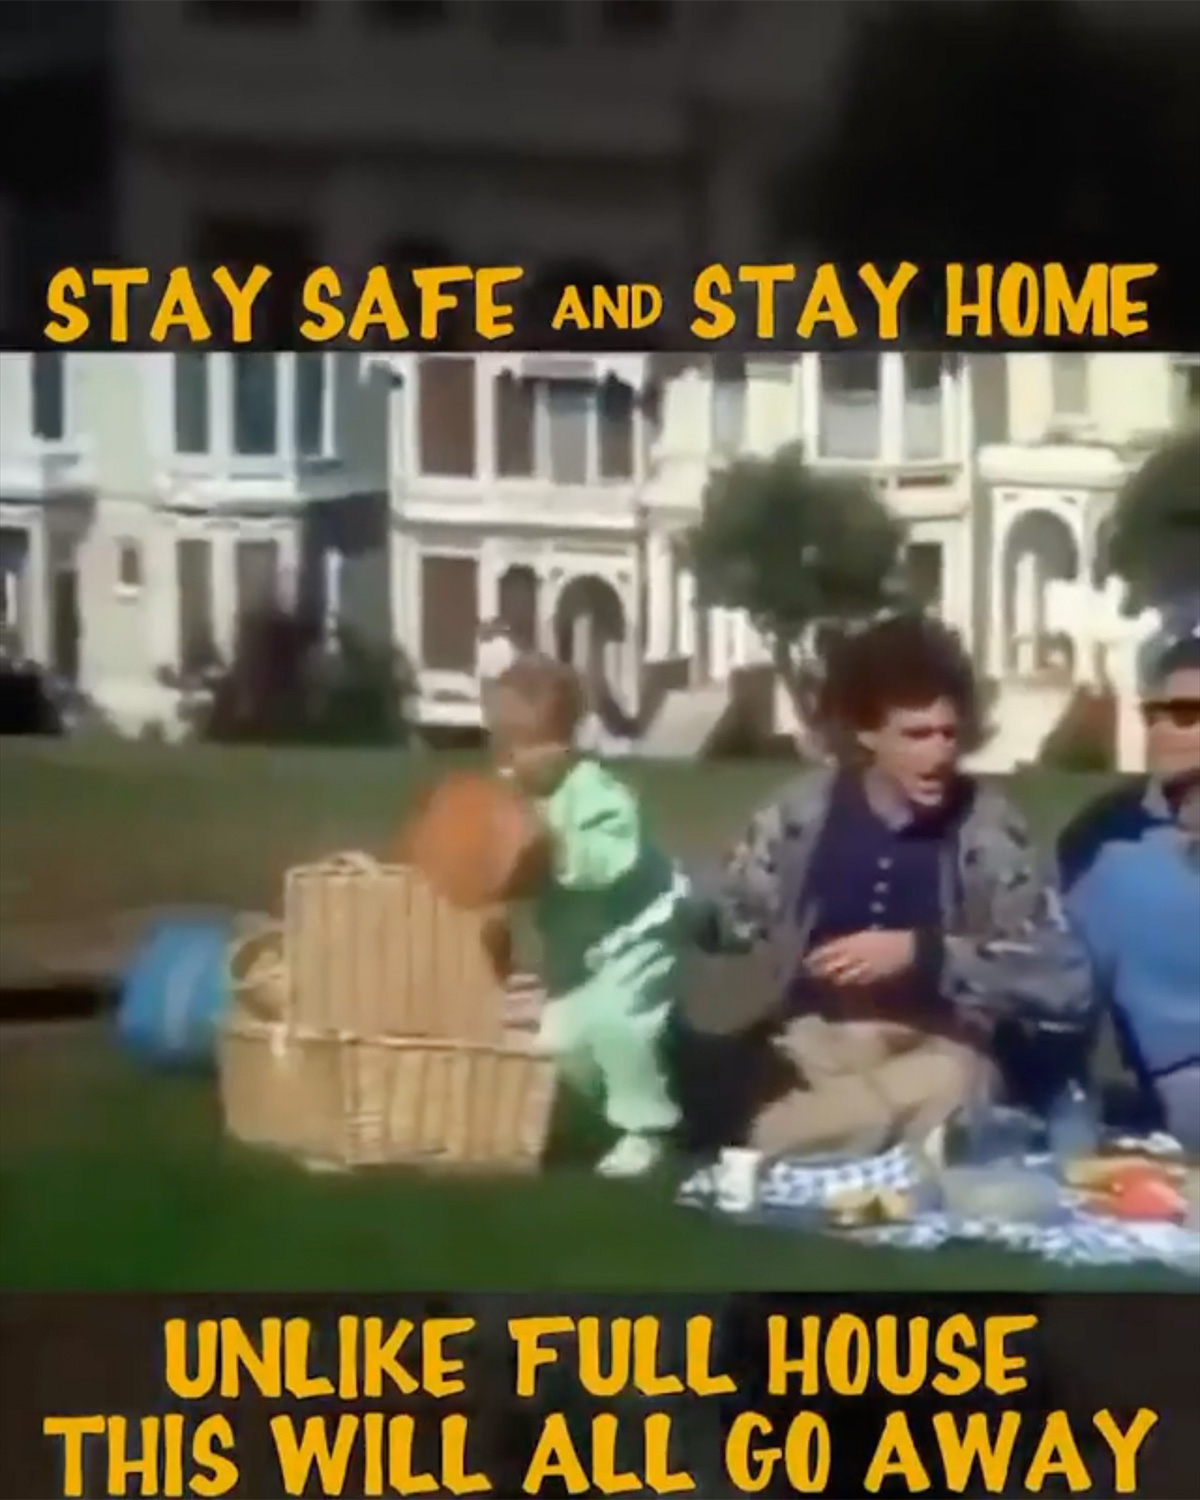 Full House cast reshoots iconic opening to encourage fans to stay home amid coronavirus